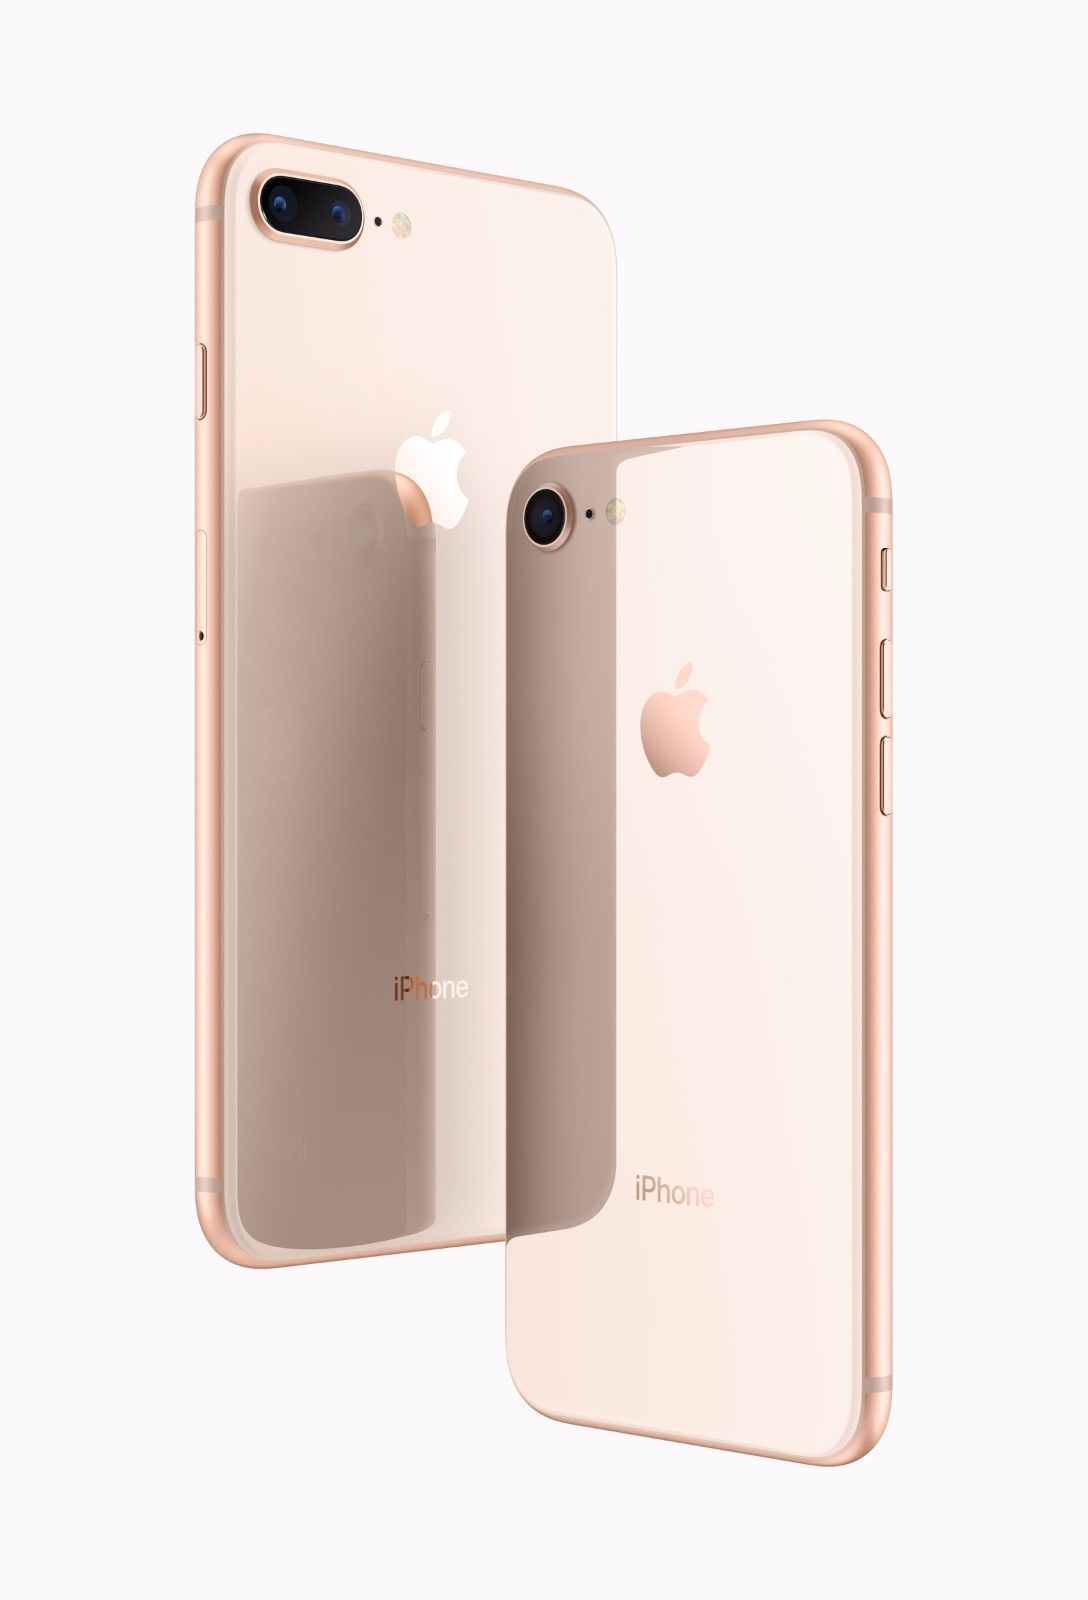 Apple Iphone 8 Plus 256gb Gold At T Smartphone New Iphone Apple Phone New Iphone 8